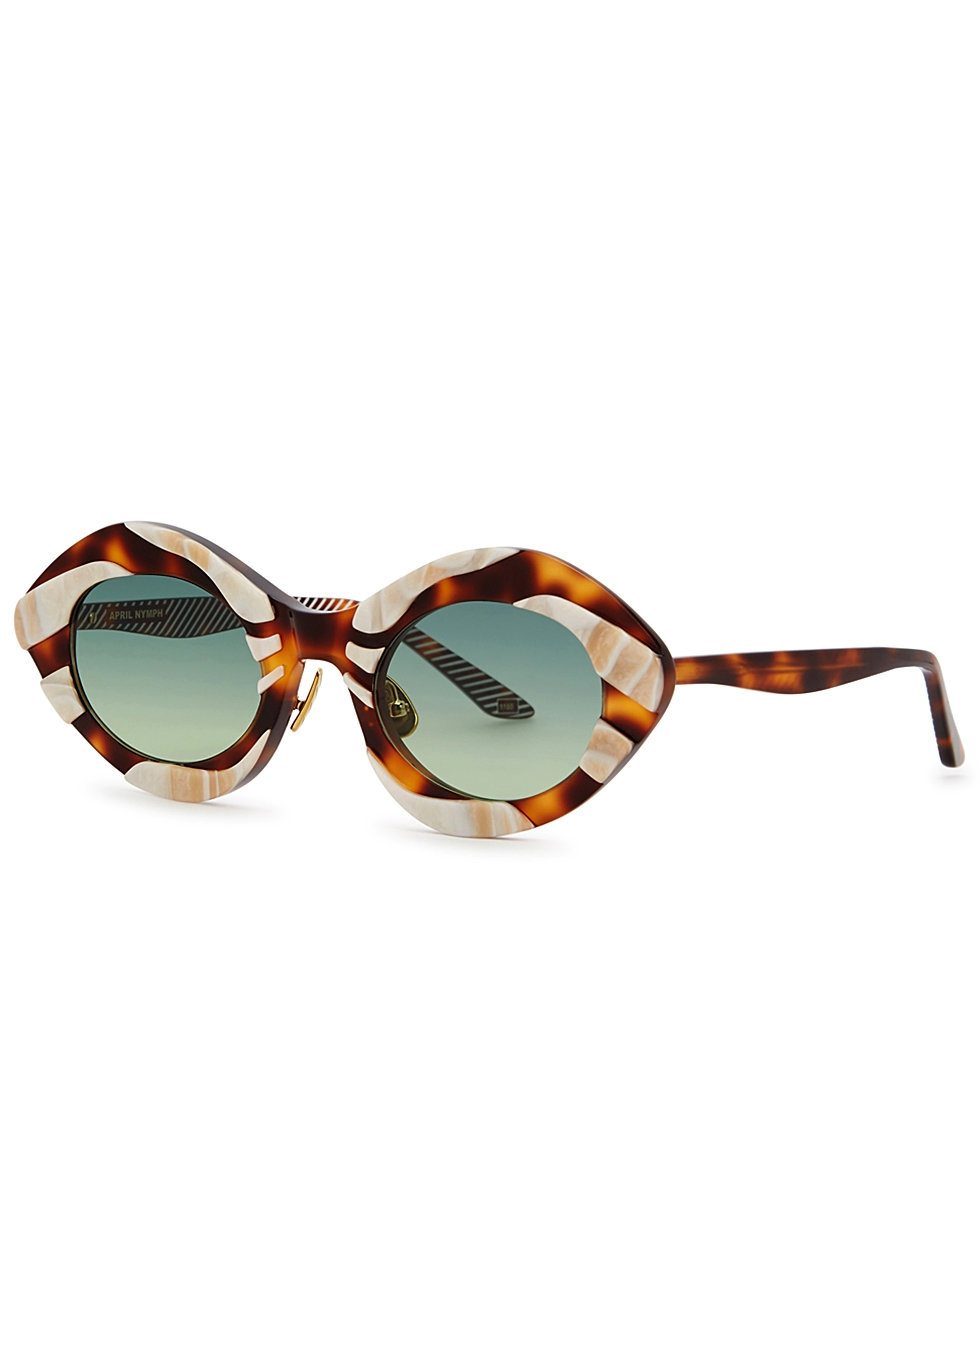 MOY ATELIER April Nymph Oval-Frame Sunglasses in Tortoise